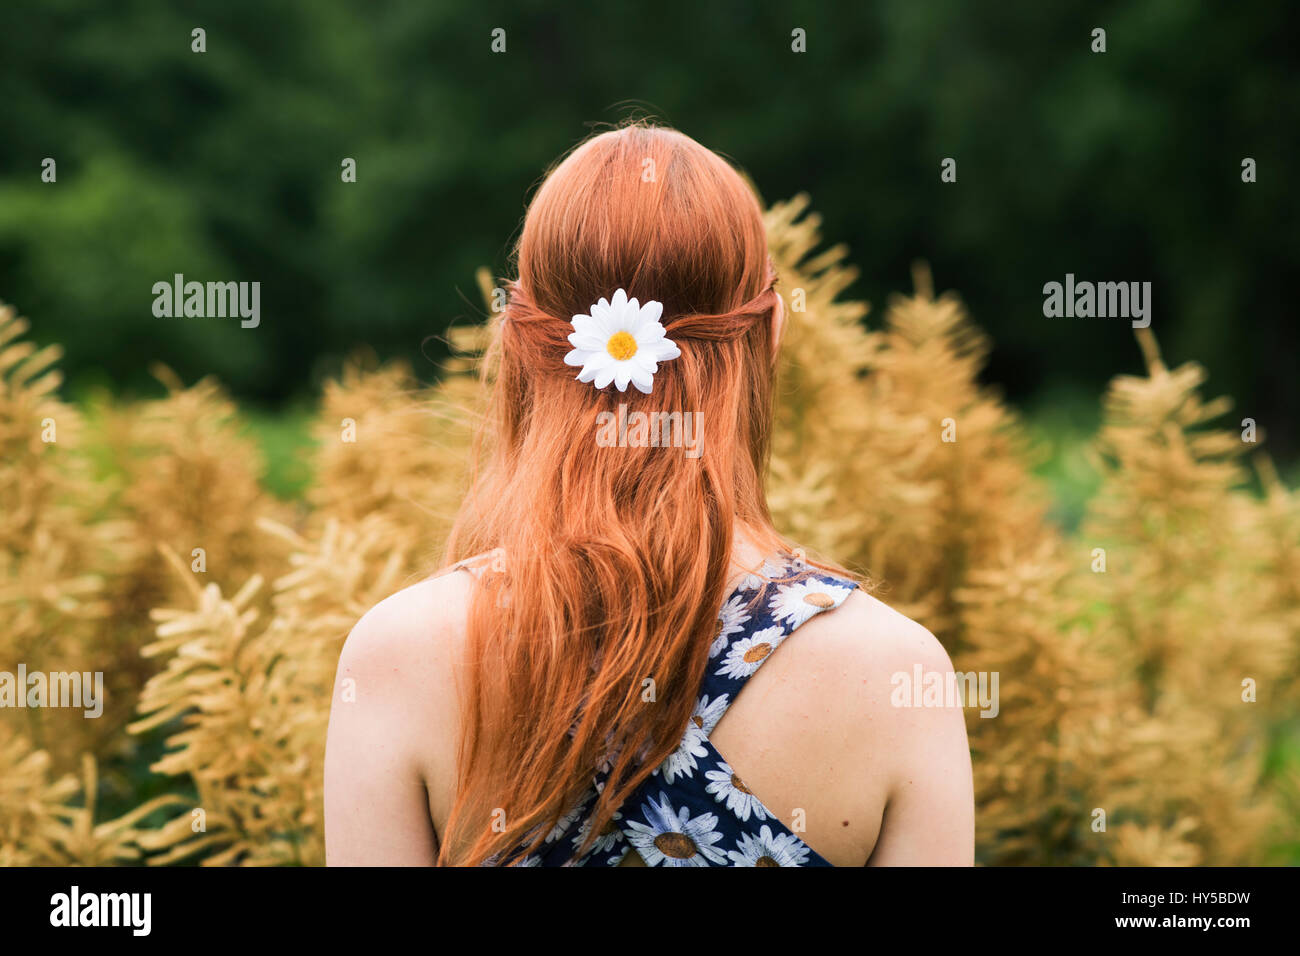 Finland, Pirkanmaa, Tampere, Young woman wearing floral dress and daisy flower in her hair - Stock Image